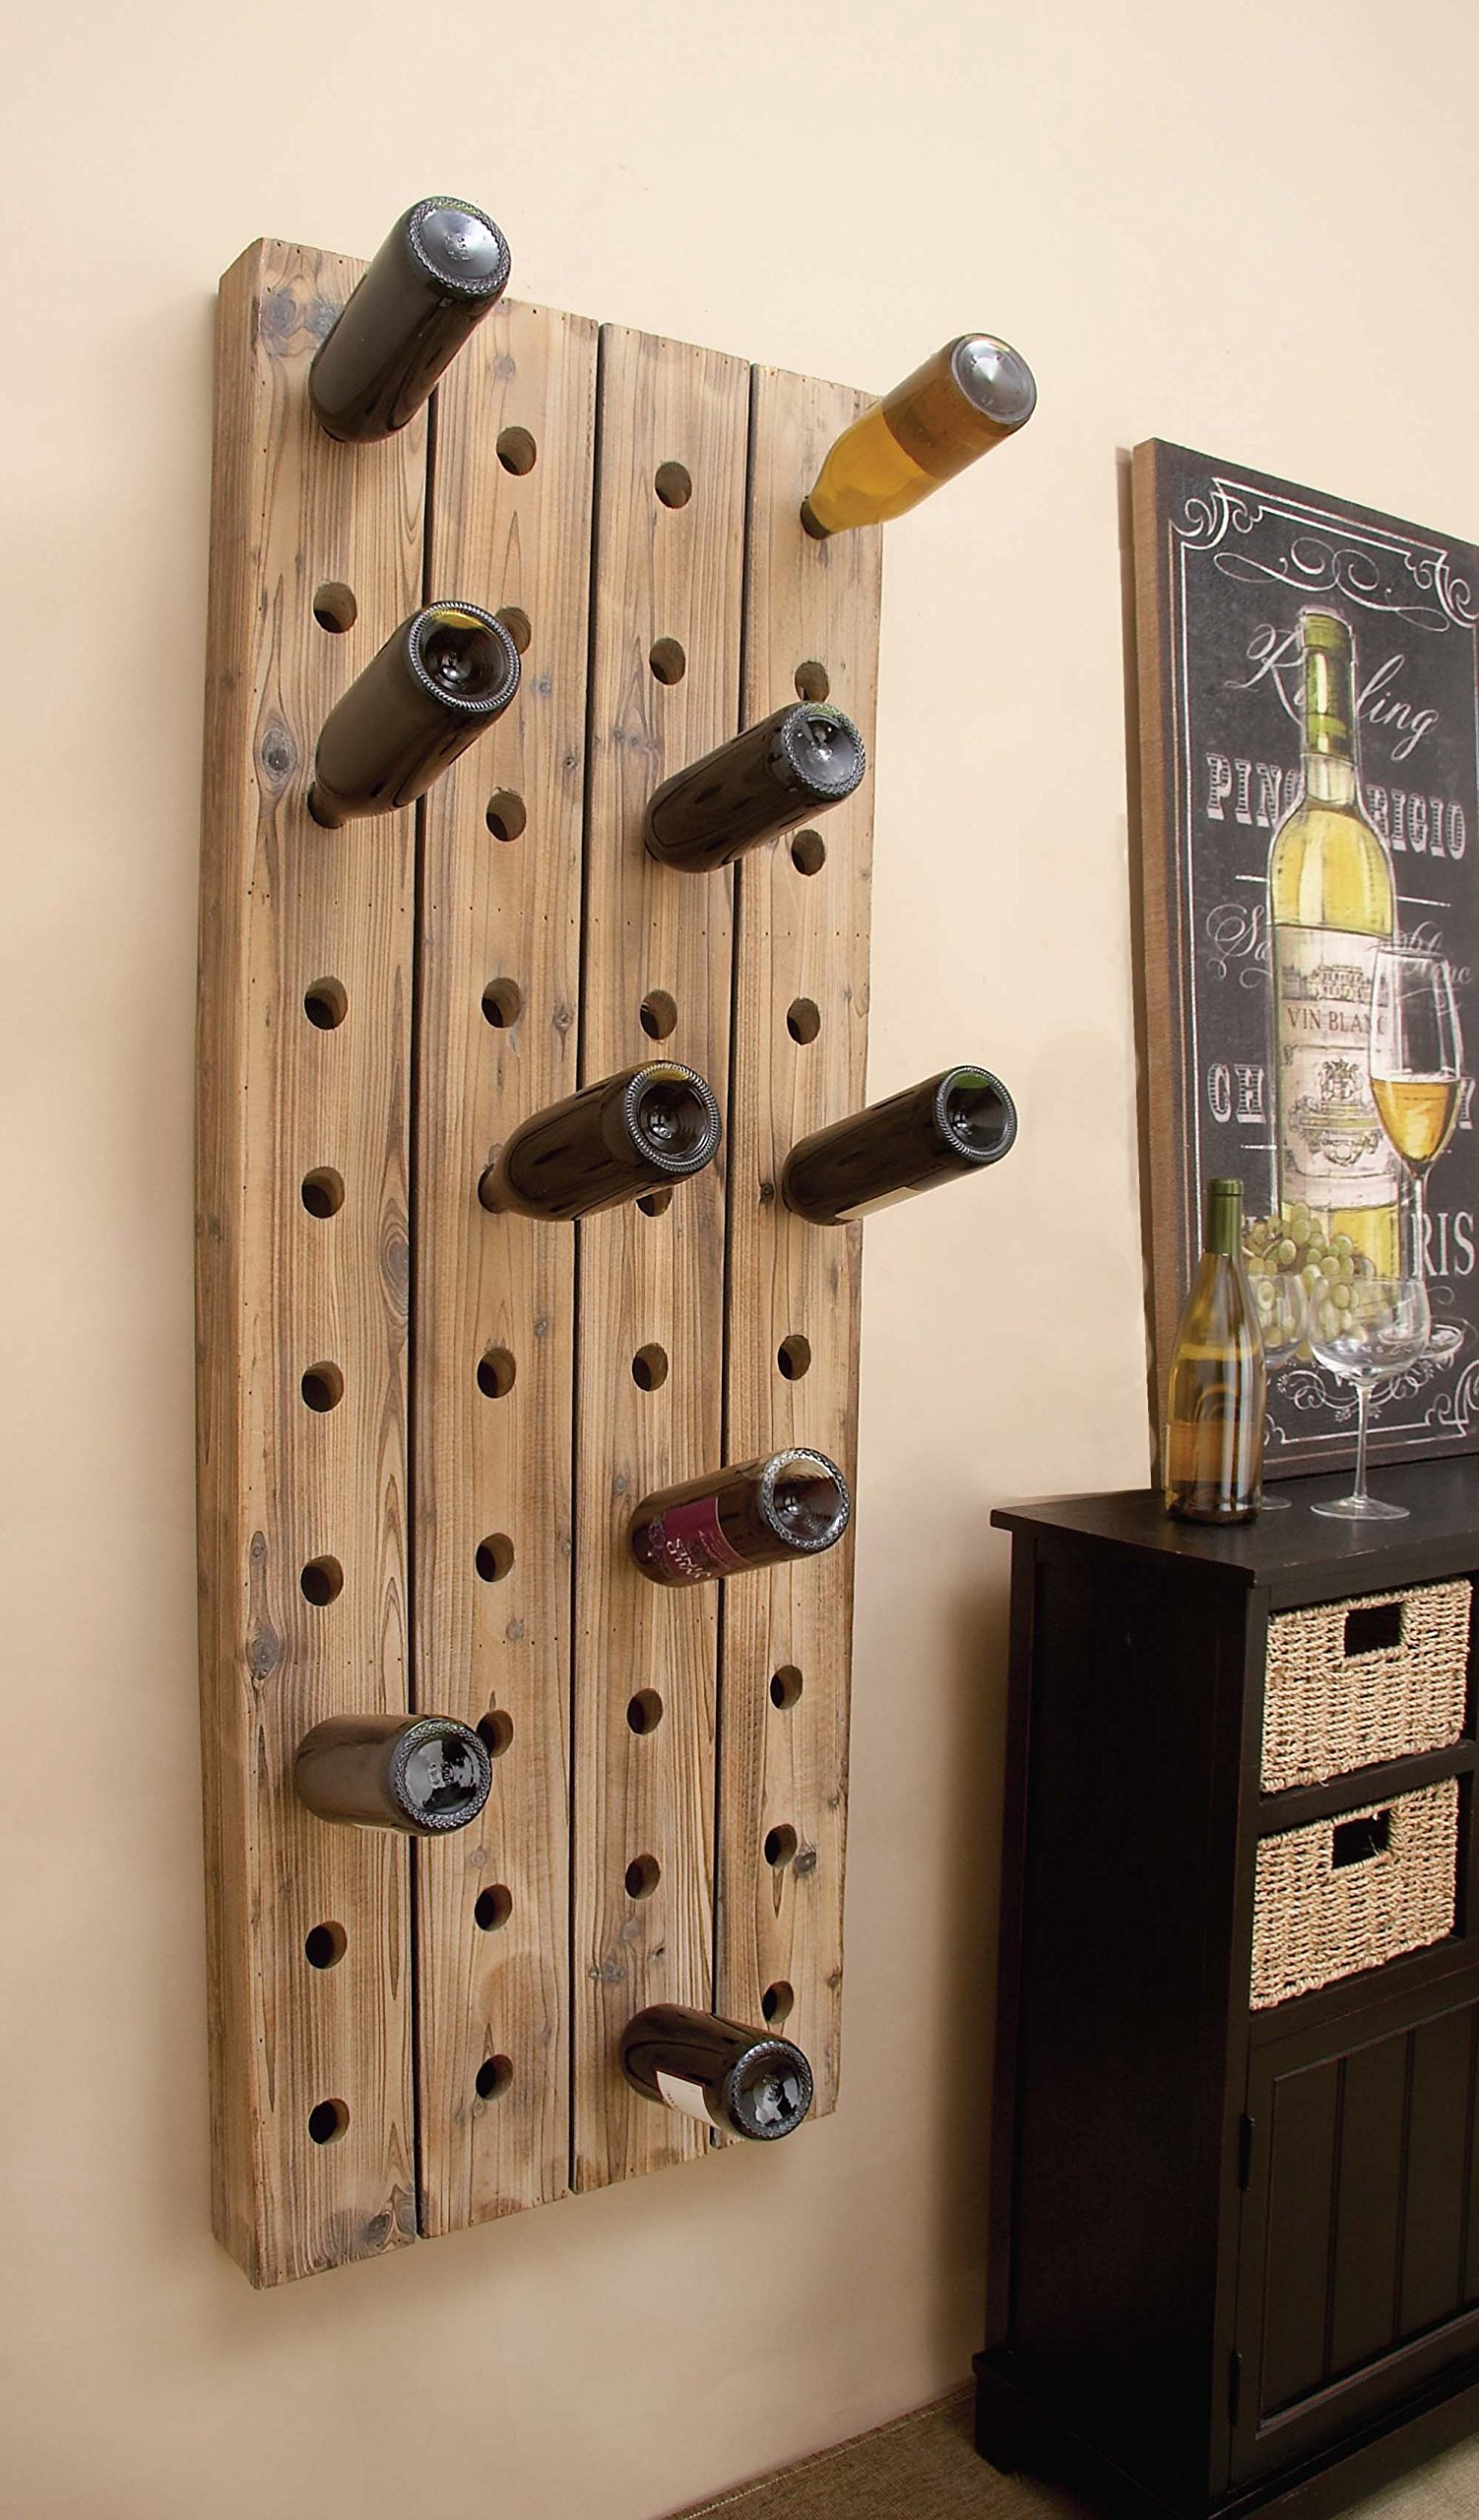 Deco 79 Wood Wine Rack, 57 by 21-Inch